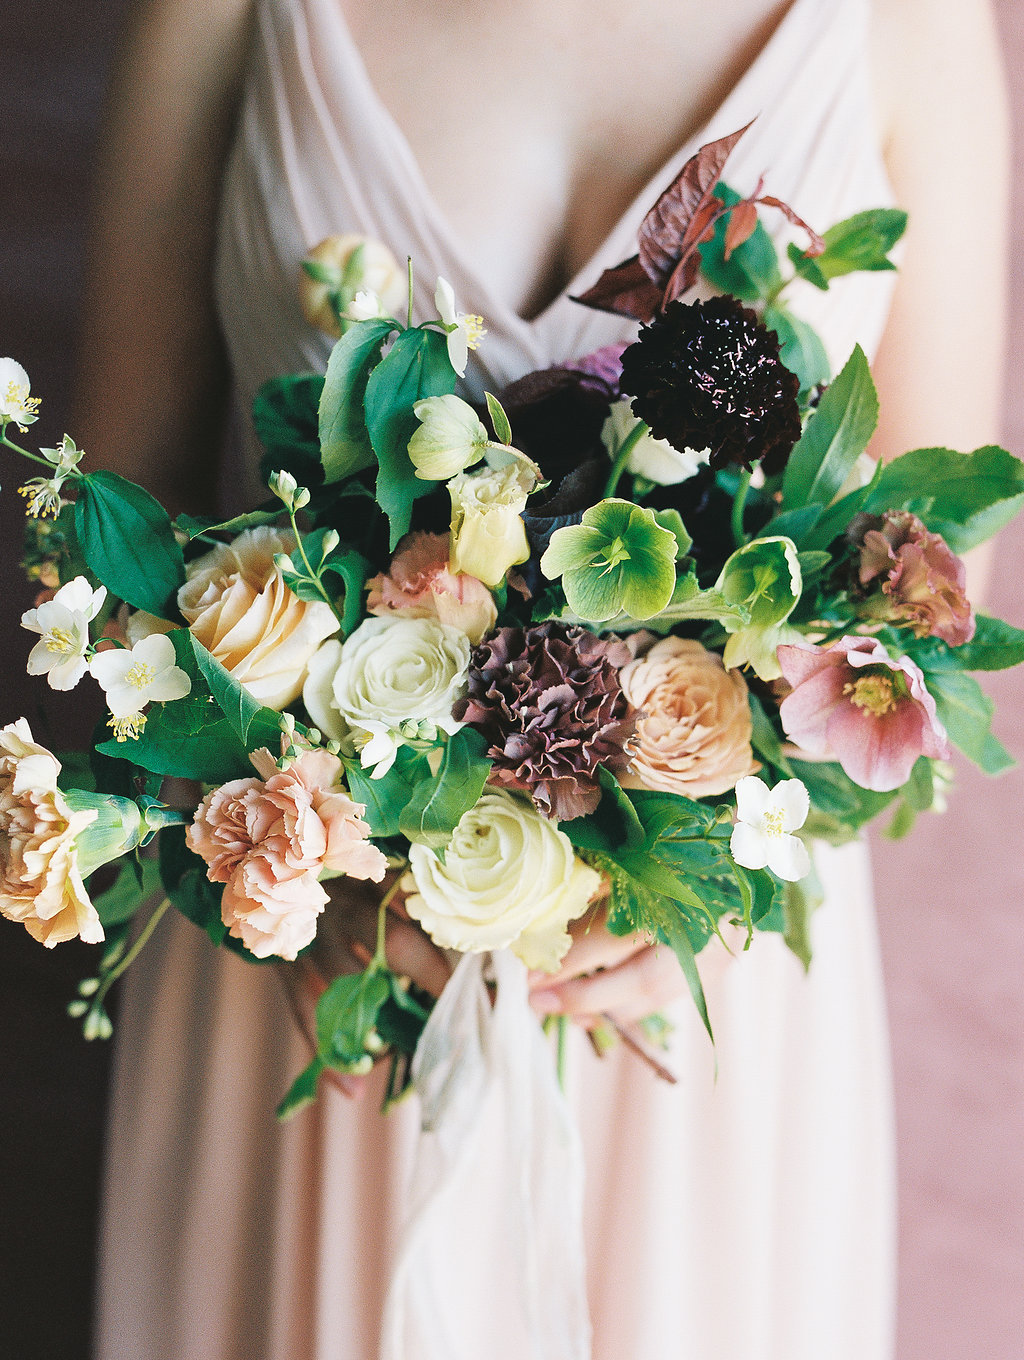 jessica-zimmerman-bridesmaid-bouquet-spring.jpg